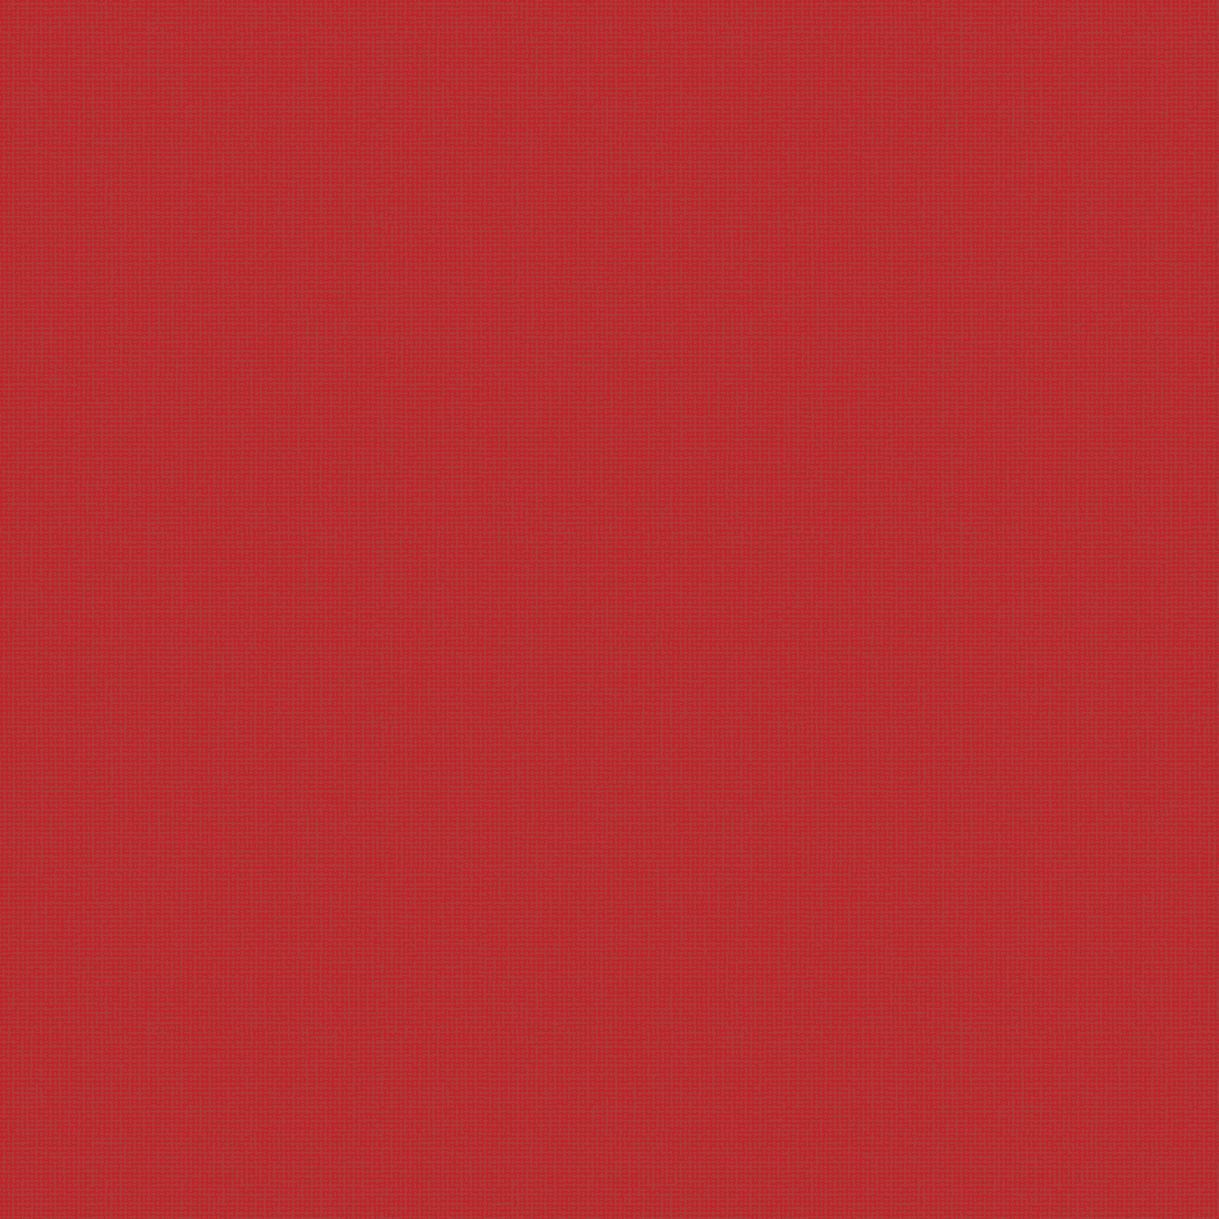 Plain Red Wallpapers - Top Free Plain